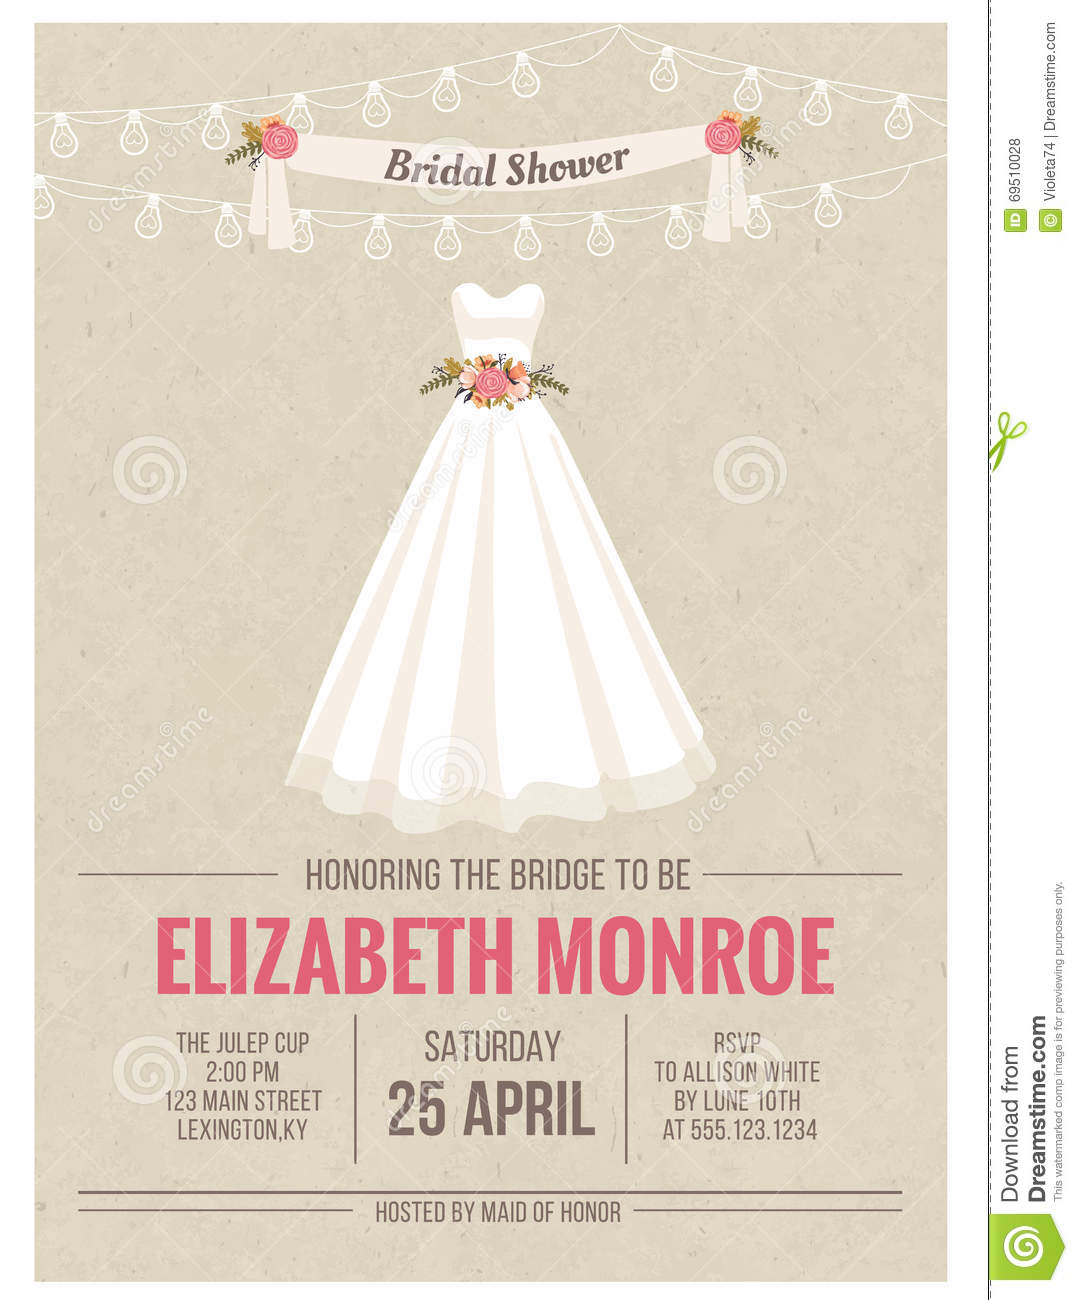 Bridal shower invitation card with wedding dress stock for Wedding dress bridal shower invitations